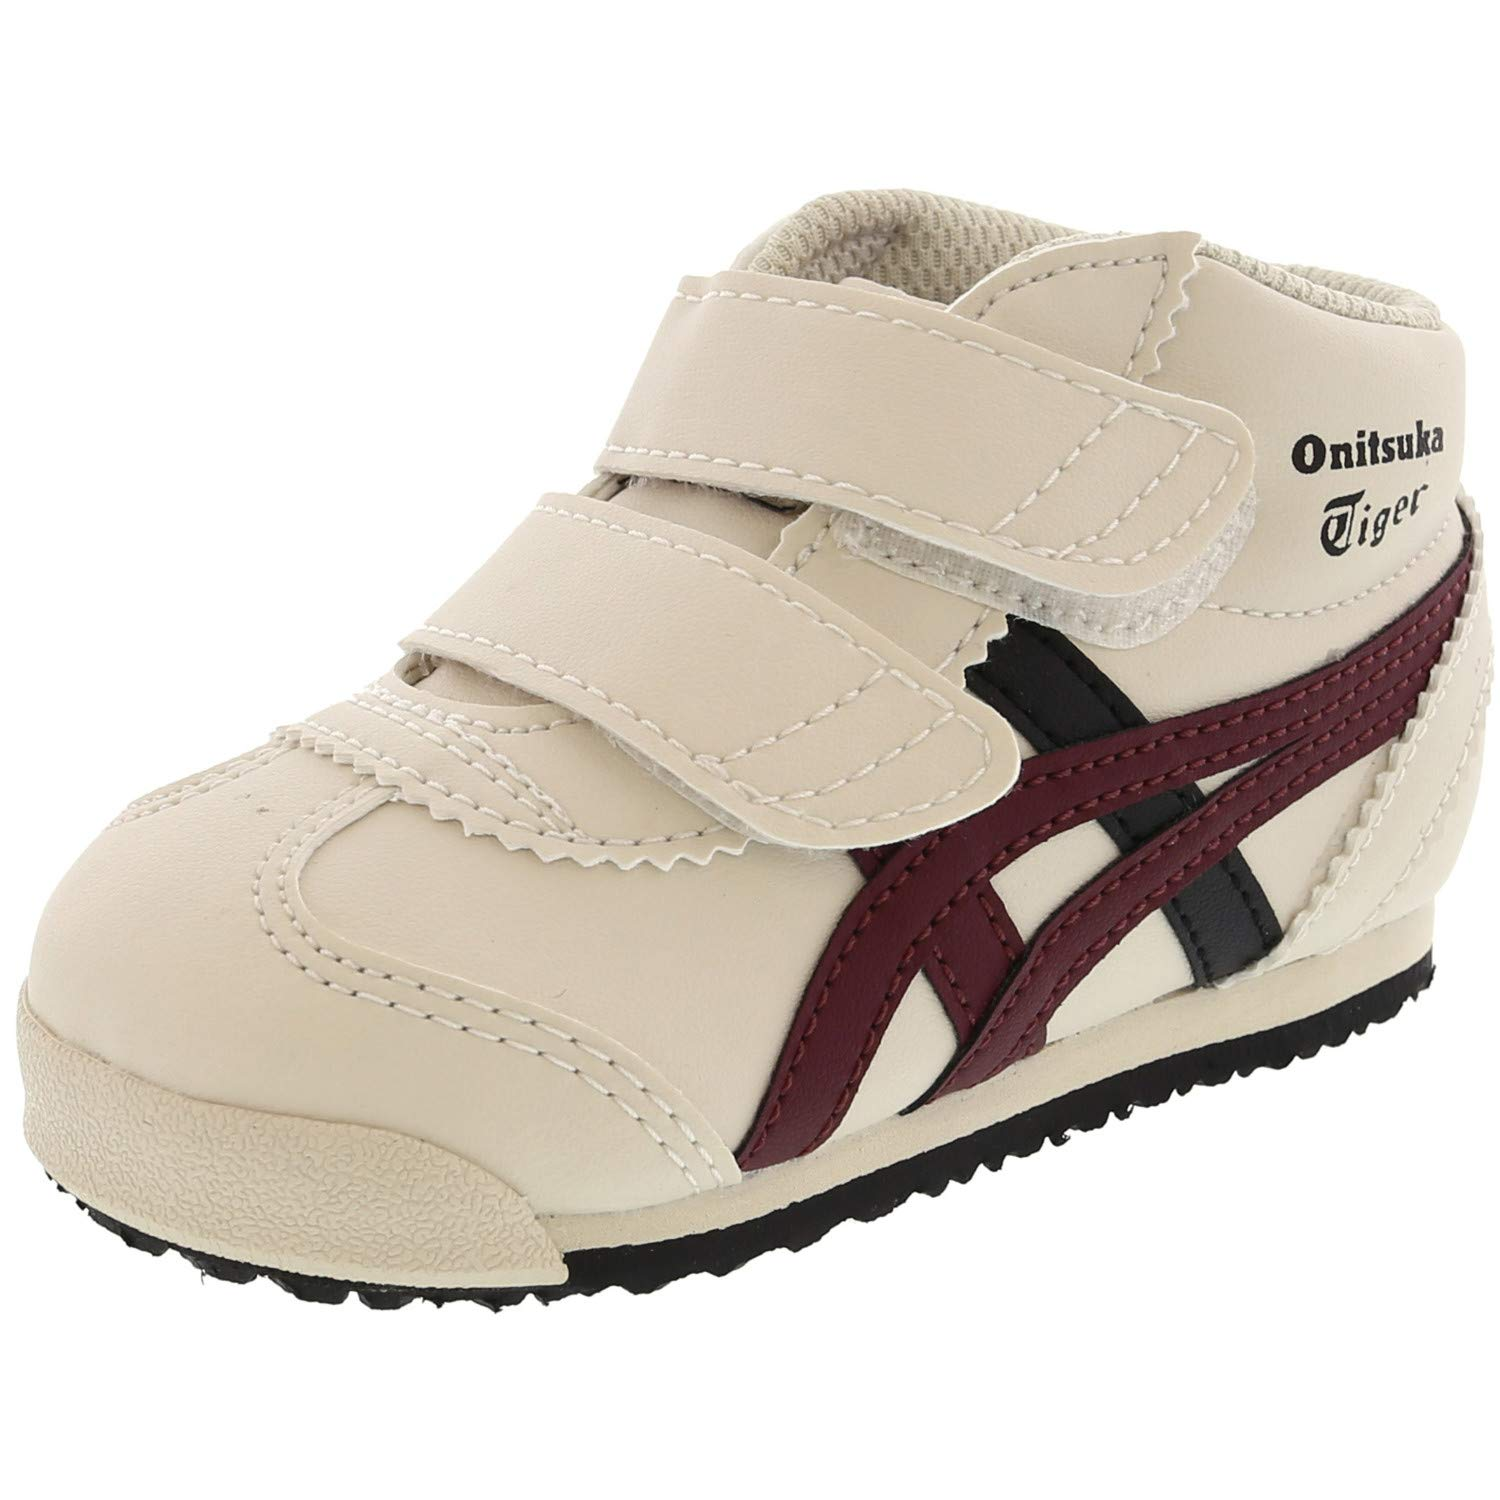 competitive price 99ffe c9066 Amazon.com   Onitsuka Tiger Mexico Mid Runner Ts Ankle-High ...